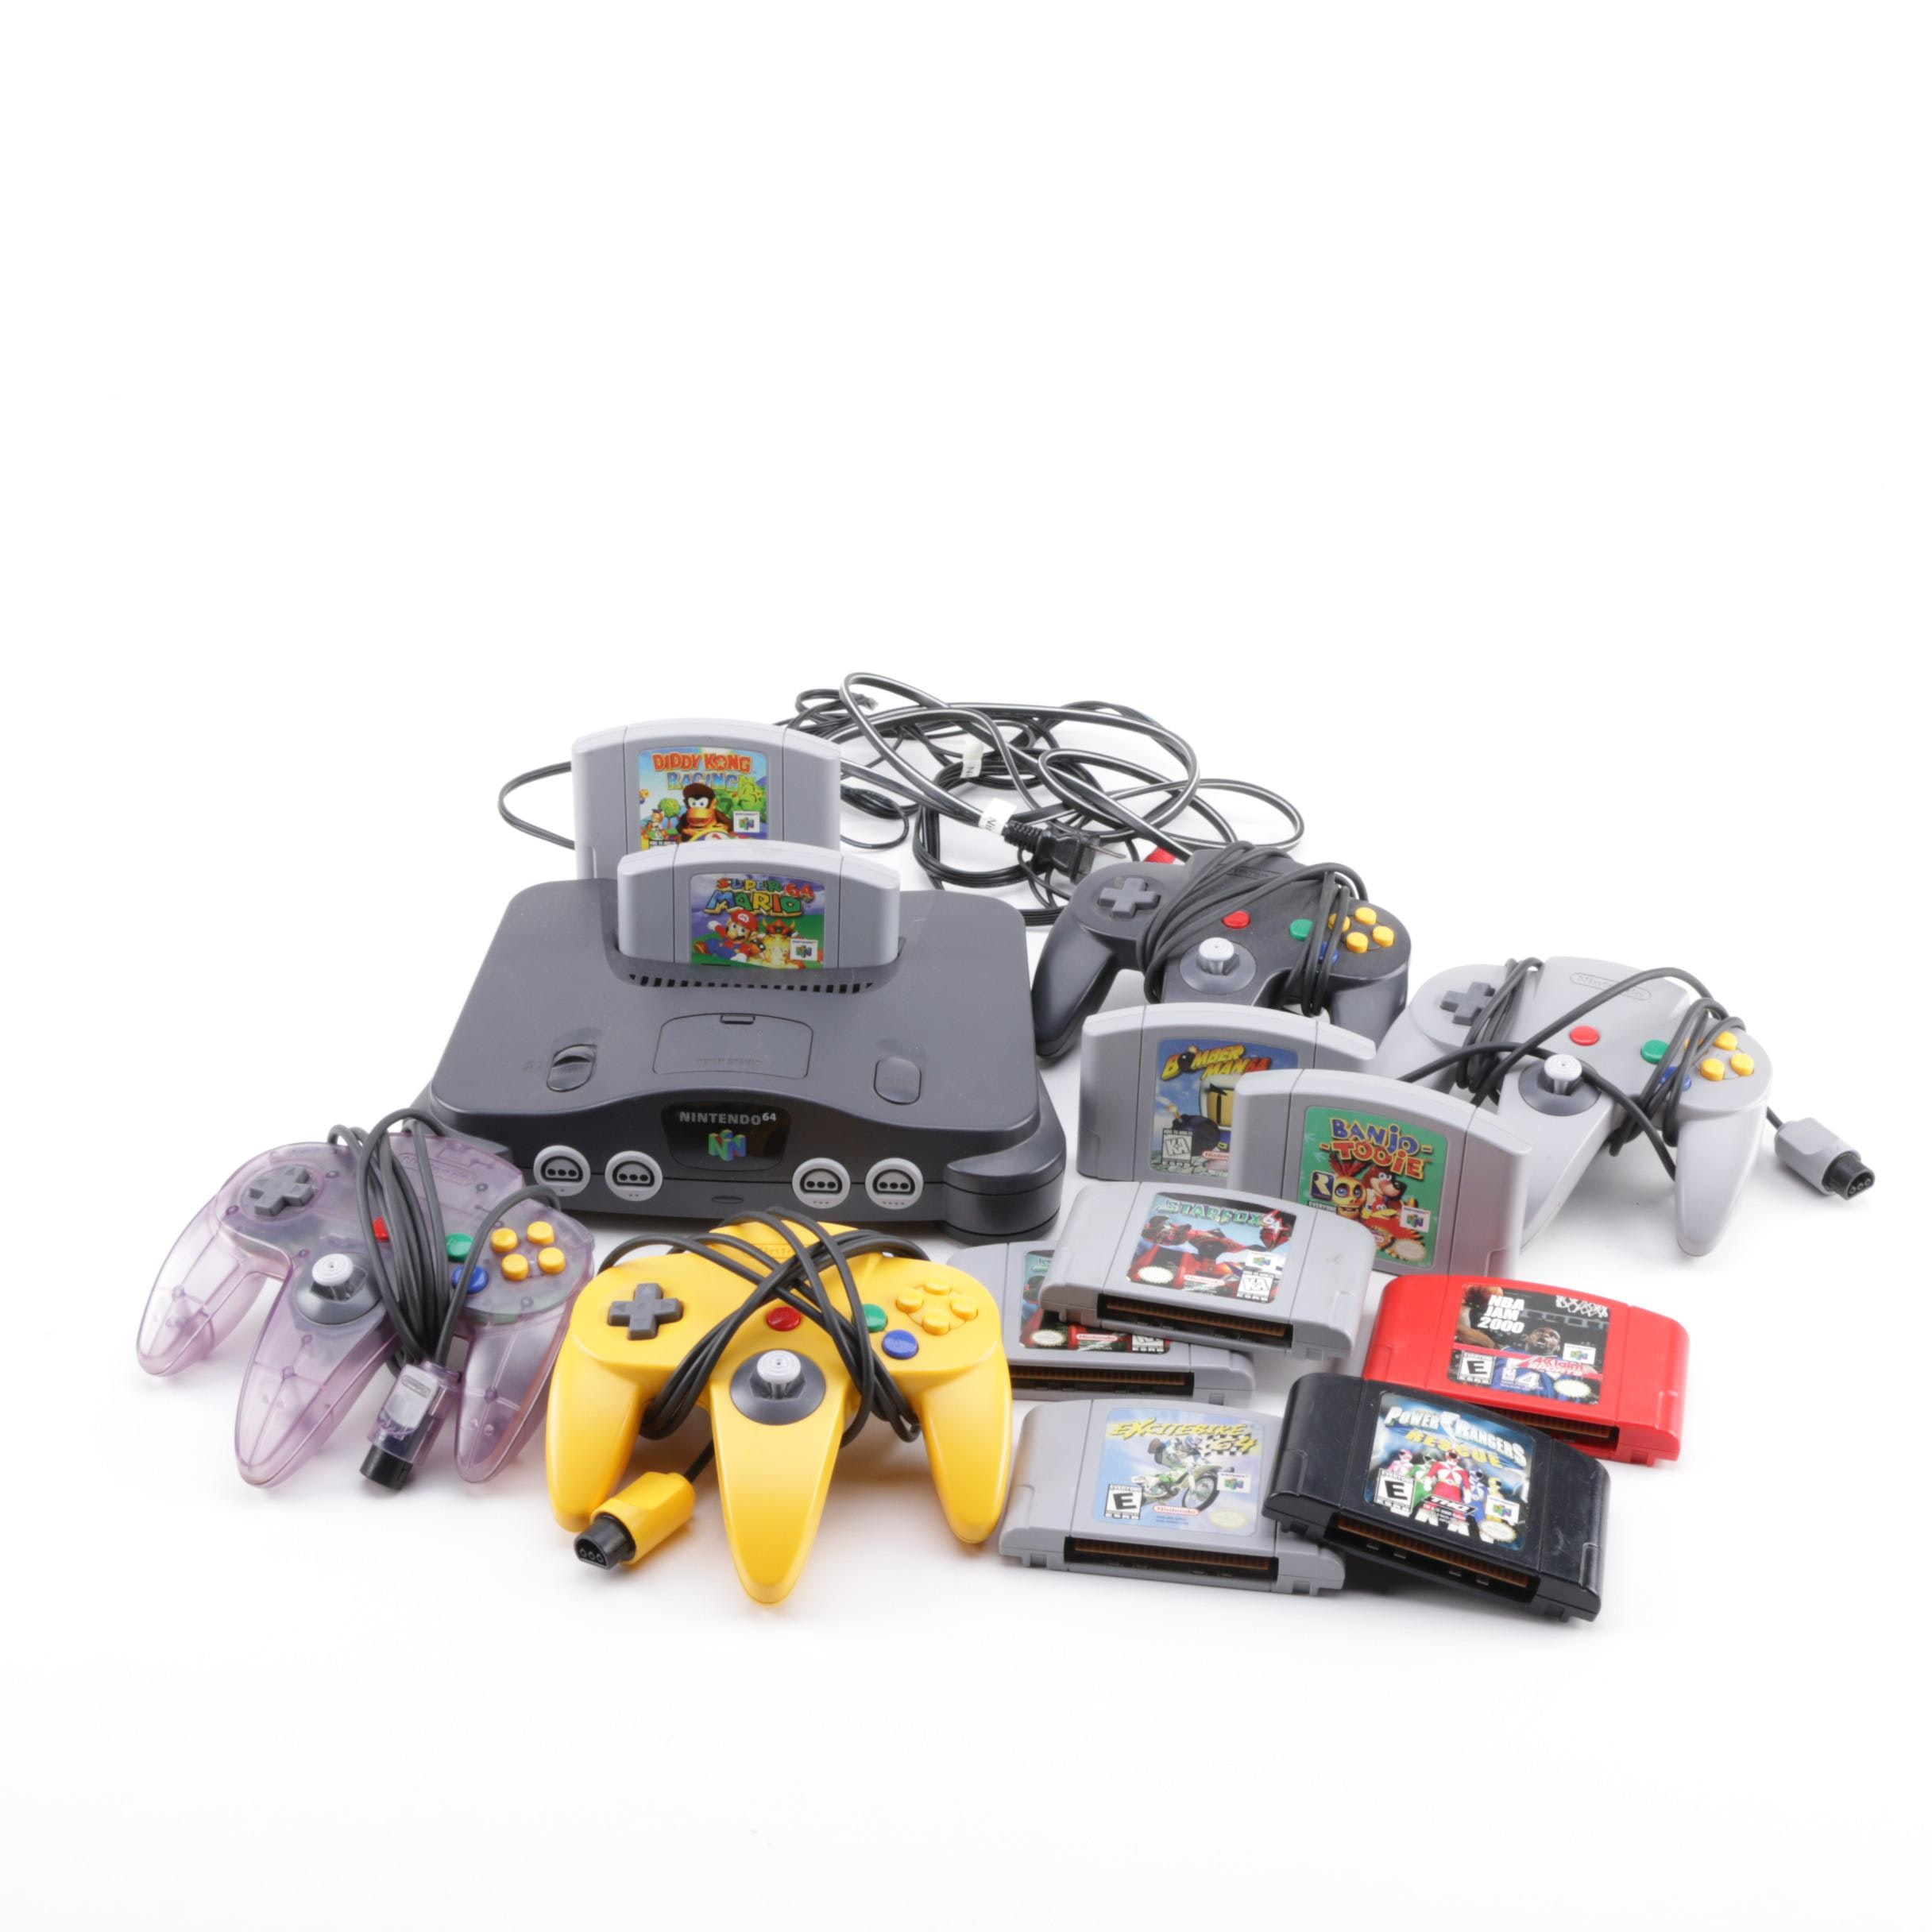 Nintendo 64 Console with Games and Controllers